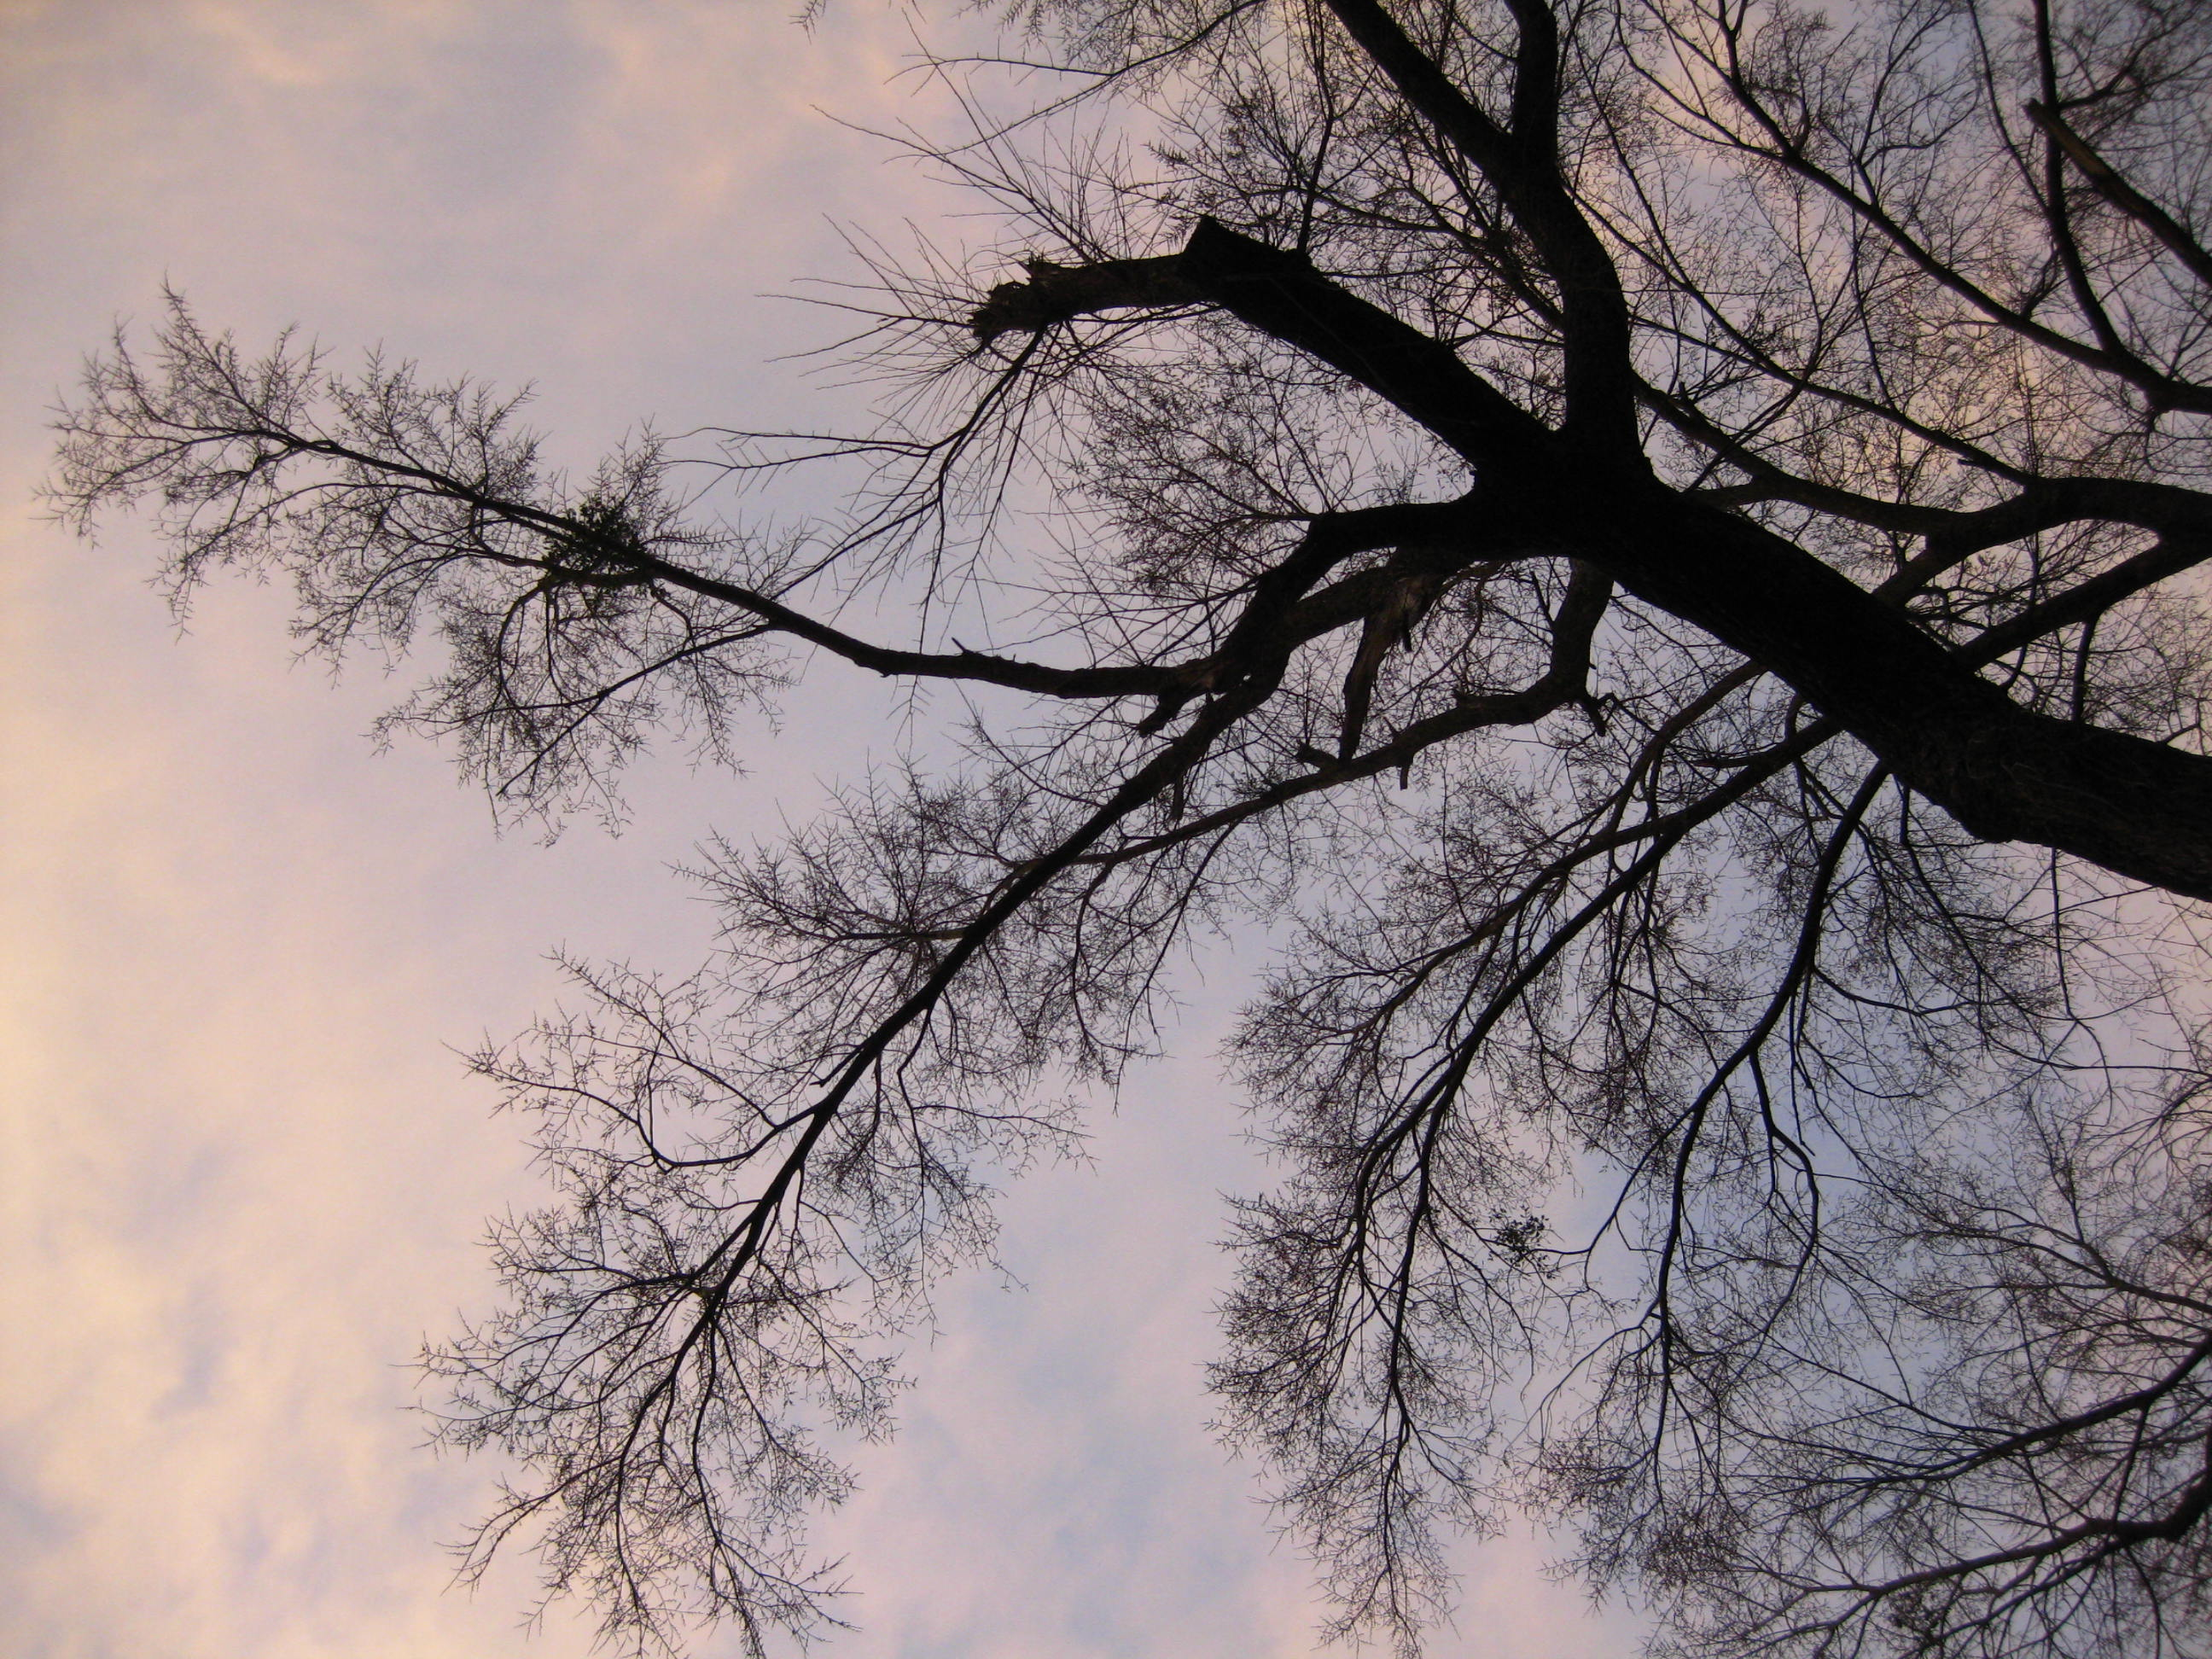 Looking up on a late afternoon in February.